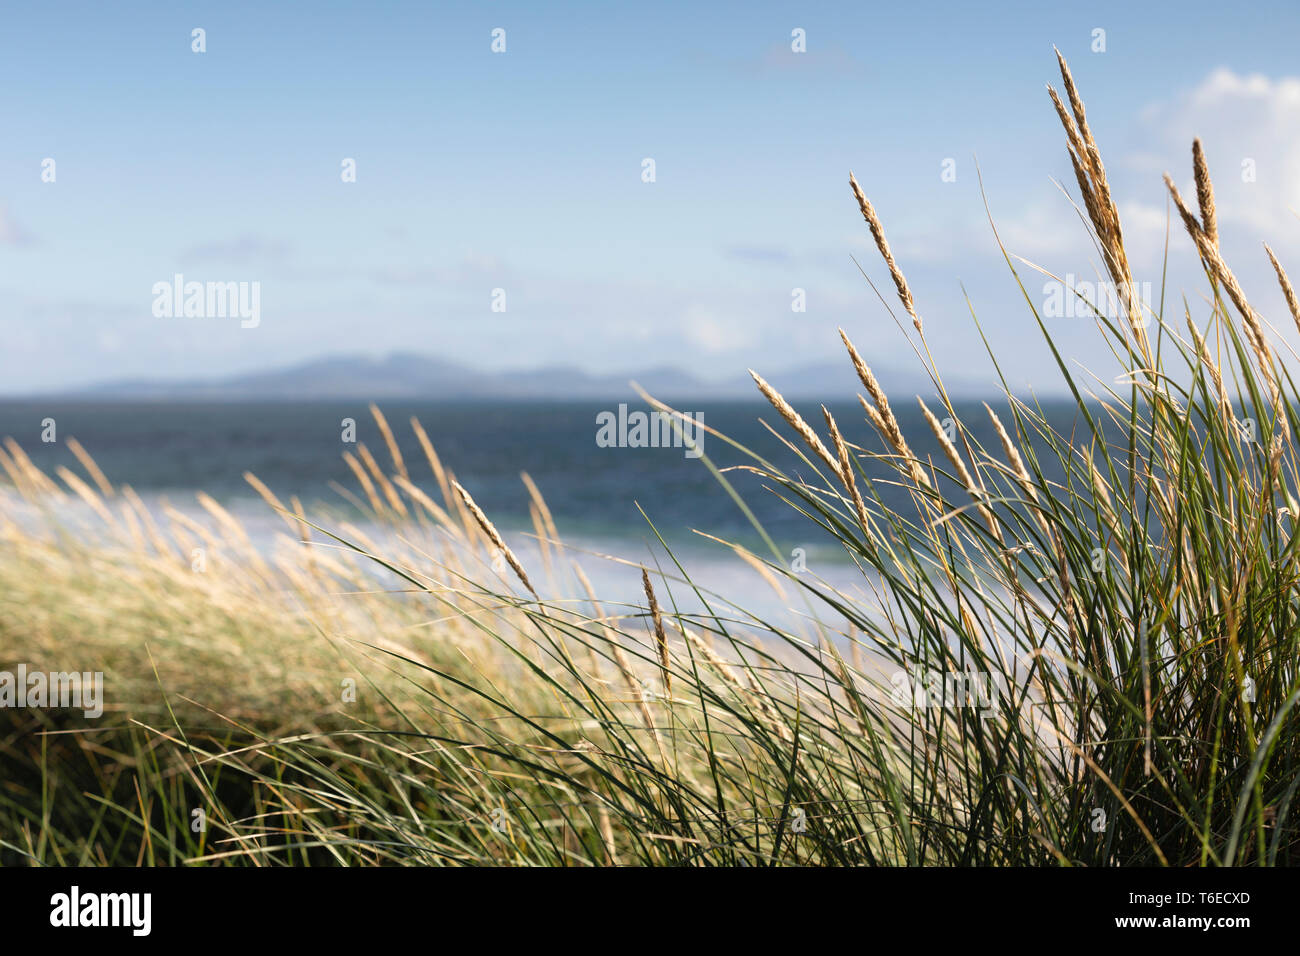 The Isle of Barra viewed from a beach near to Boisdale, Isle of South Uist, Scotland. - Stock Image